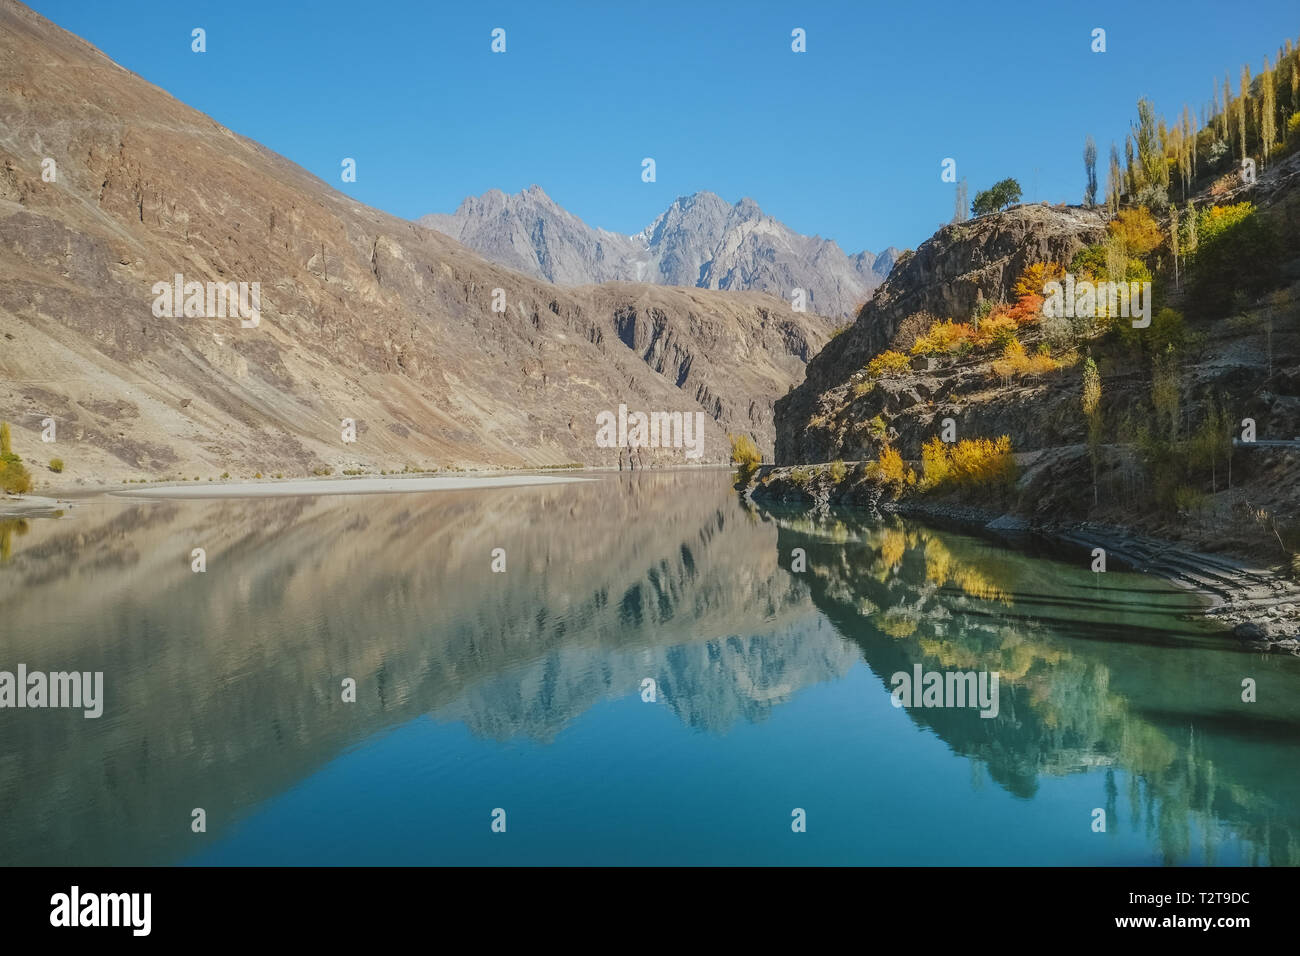 Landscape view of reflection in the water of mountains at Khalti Lake, Gupis Ghizer. Gilgit Baltistan, Pakistan. - Stock Image